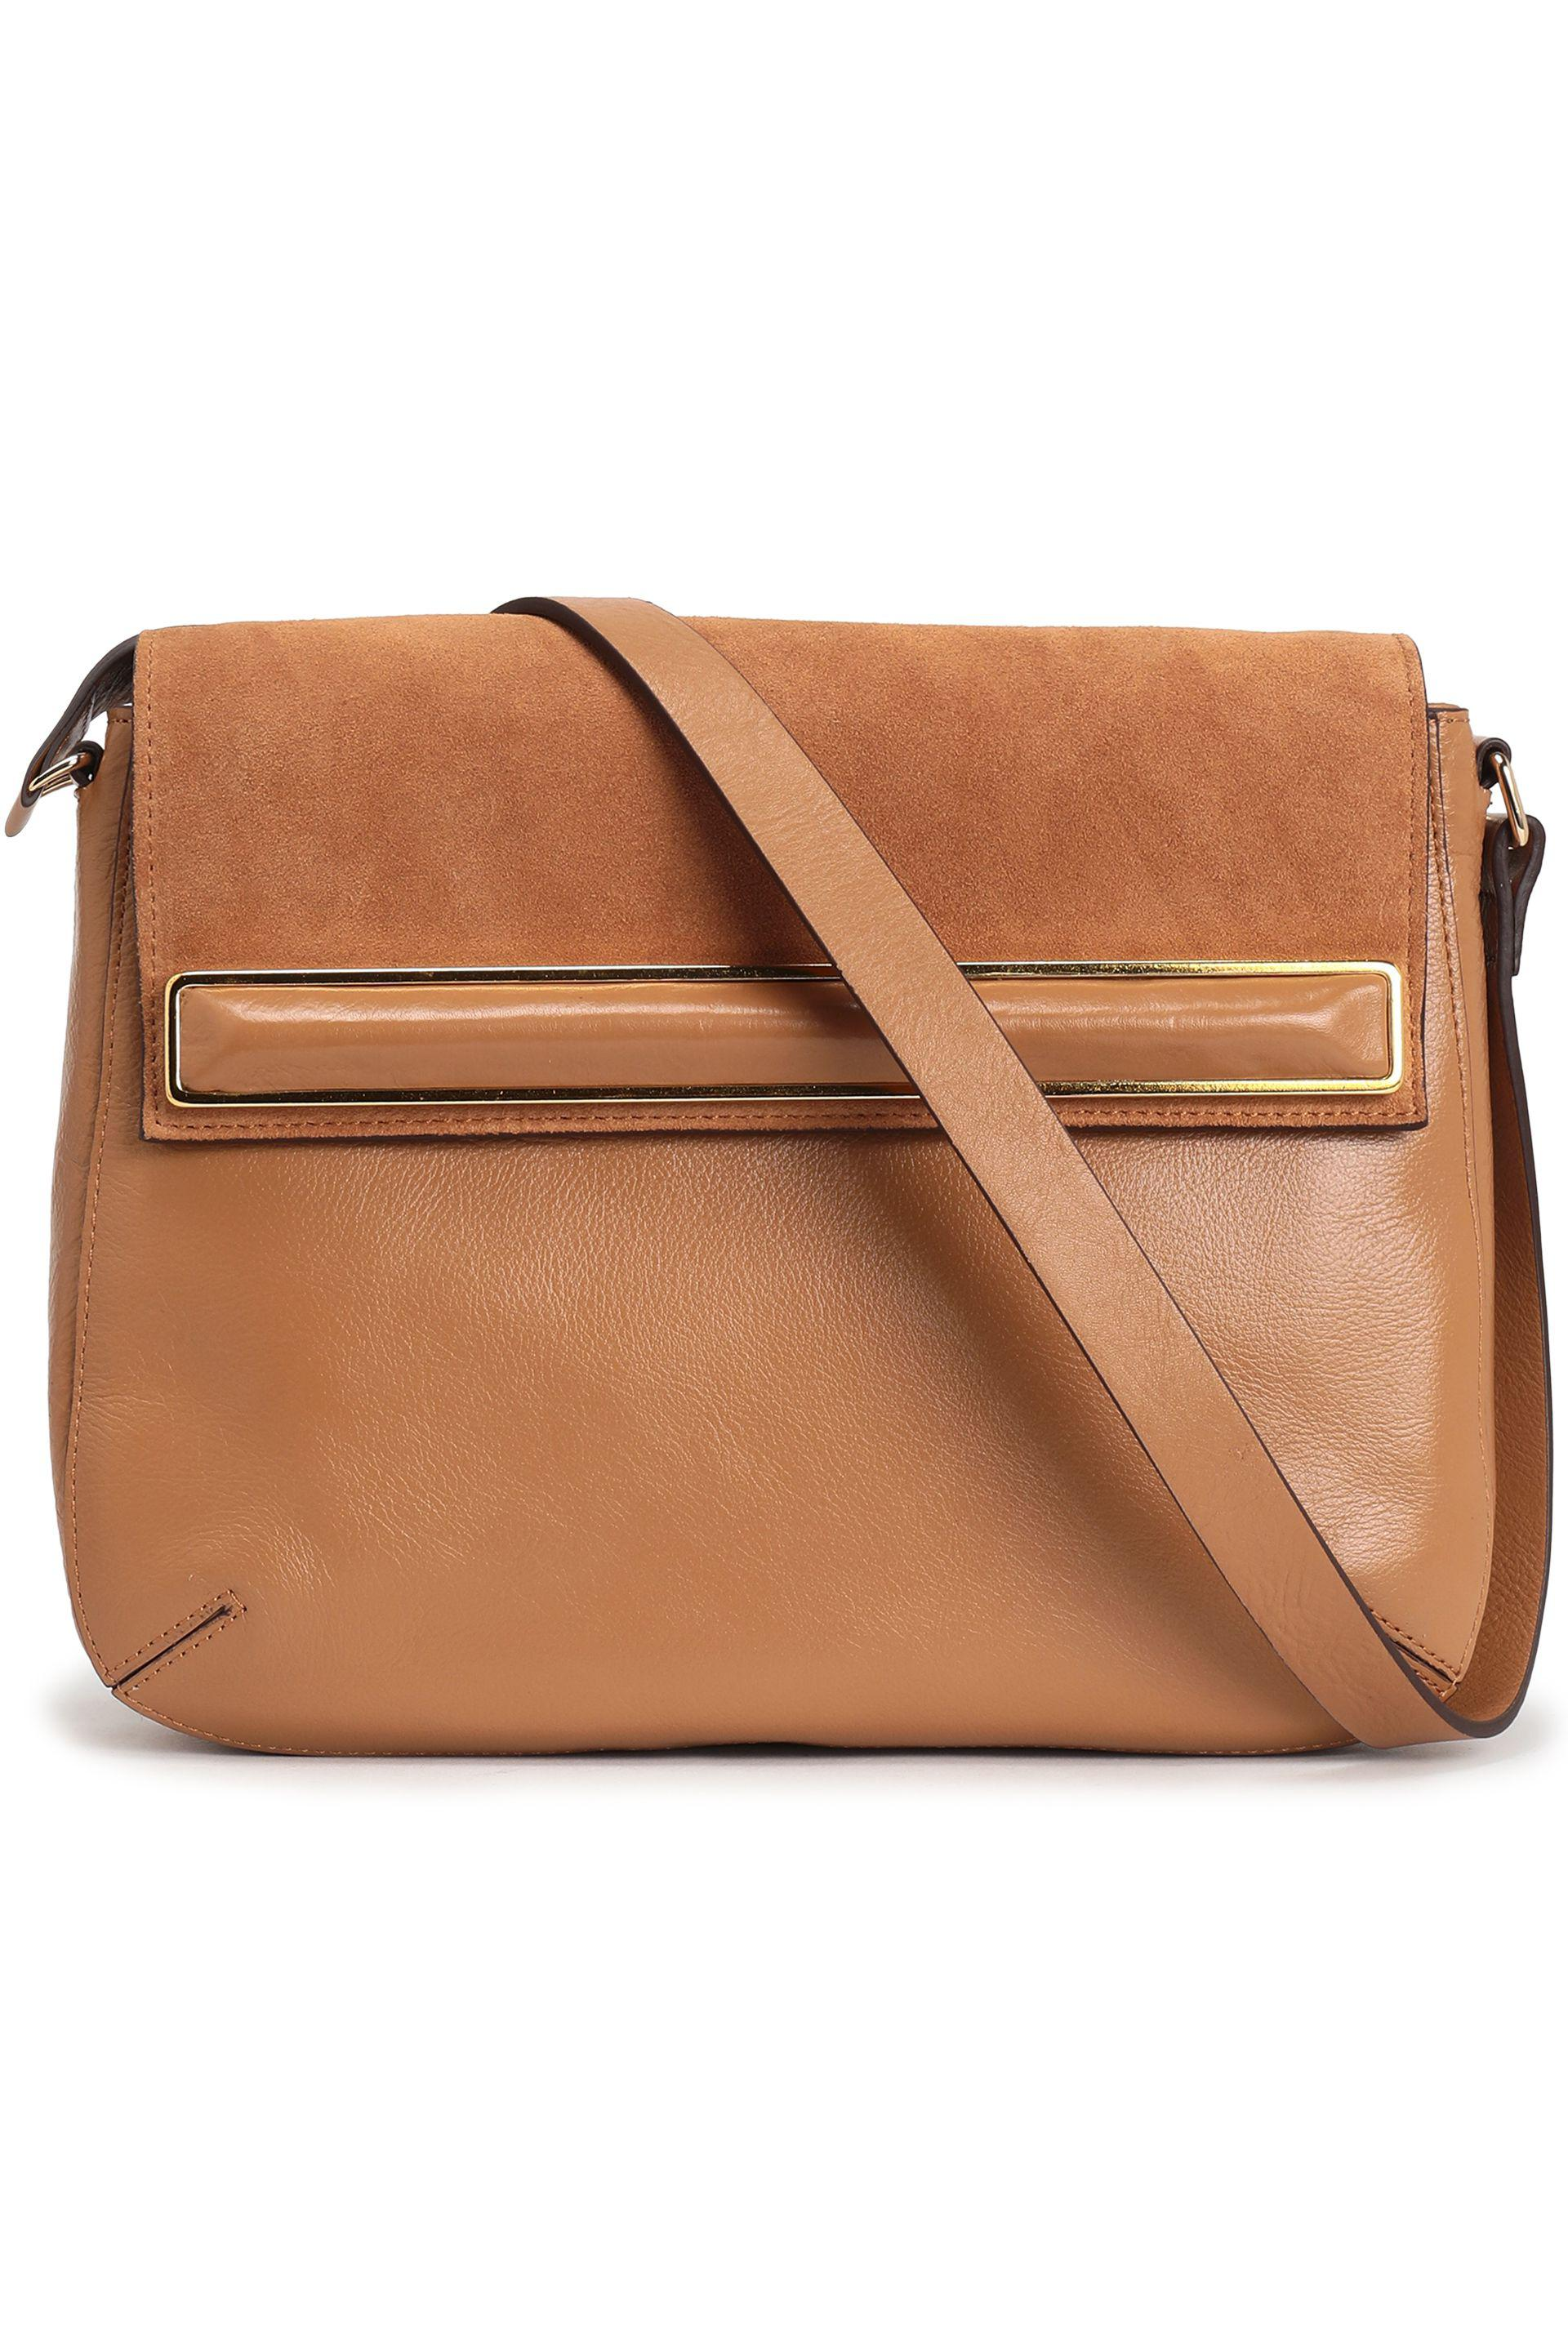 5f9f3a42038 Halston Suede-paneled Leather Shoulder Bag in Brown - Lyst